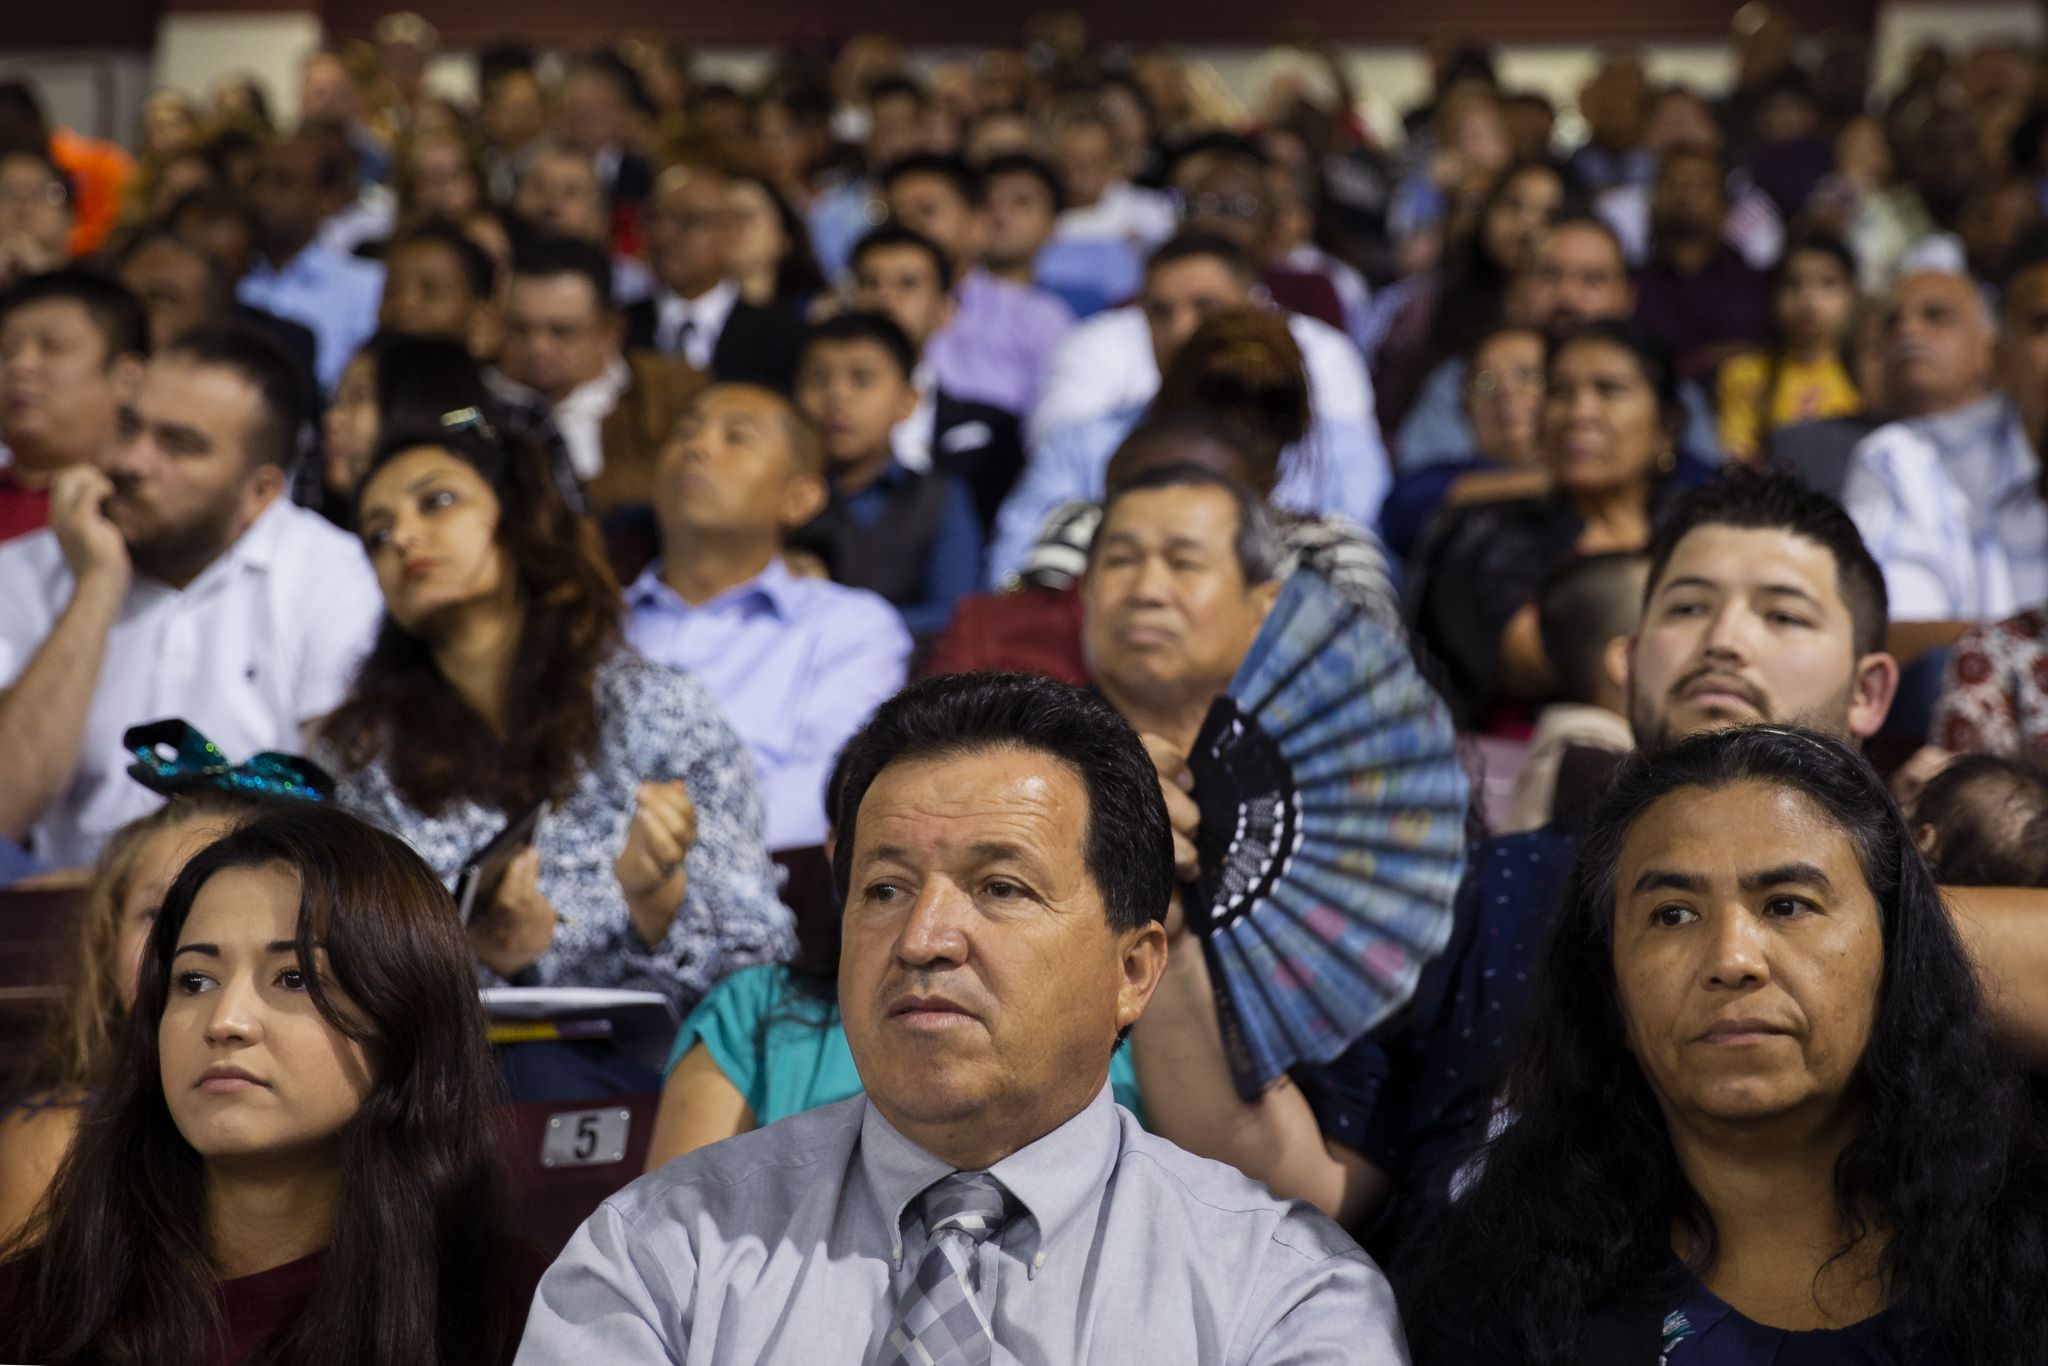 Immigrants applying for citizenship in Houston face high